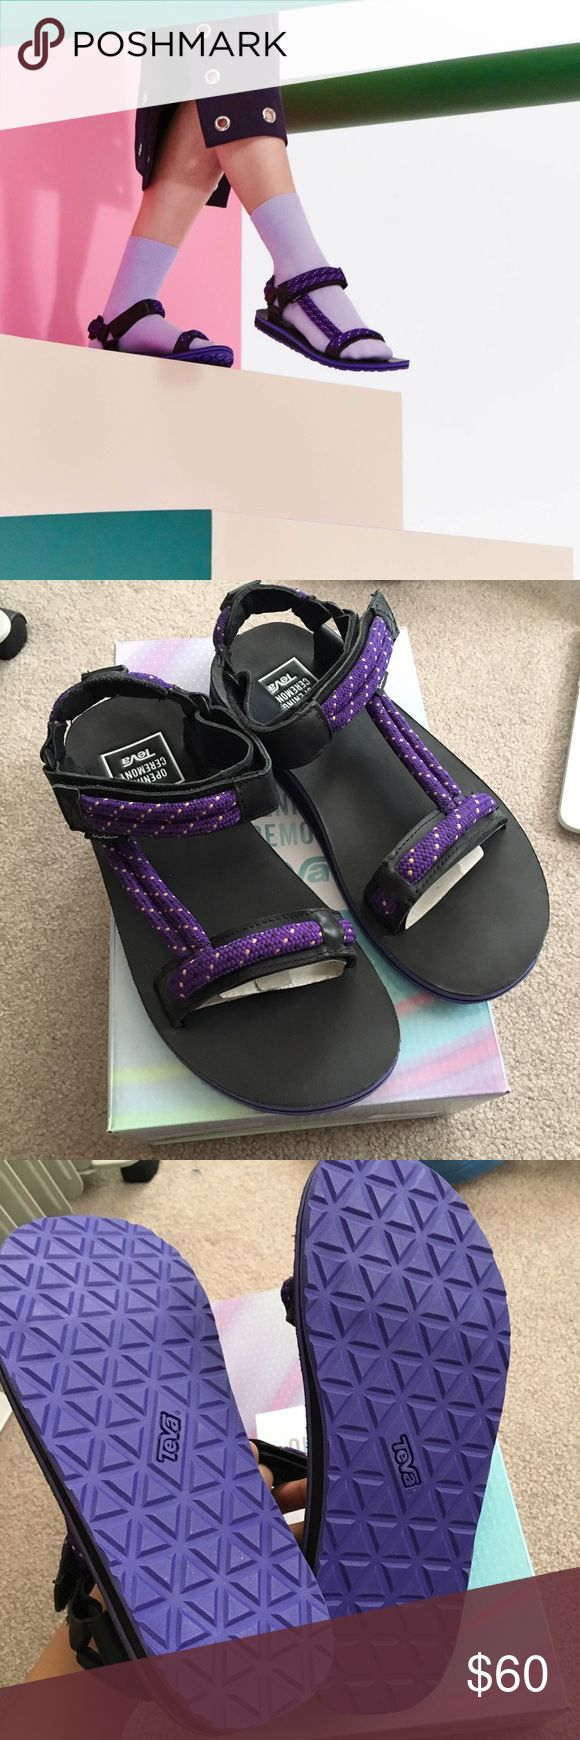 Opening Ceremony x Teva Purple Black Rope Sandal NWT- Opening Ceremony x Teva Collaboration. Purple Universal Rope Liberty. Size 6 USA / 38 EU. I'm a size 6.5 and it fits me perfectly. Just not by style Opening Ceremony Shoes Sandals